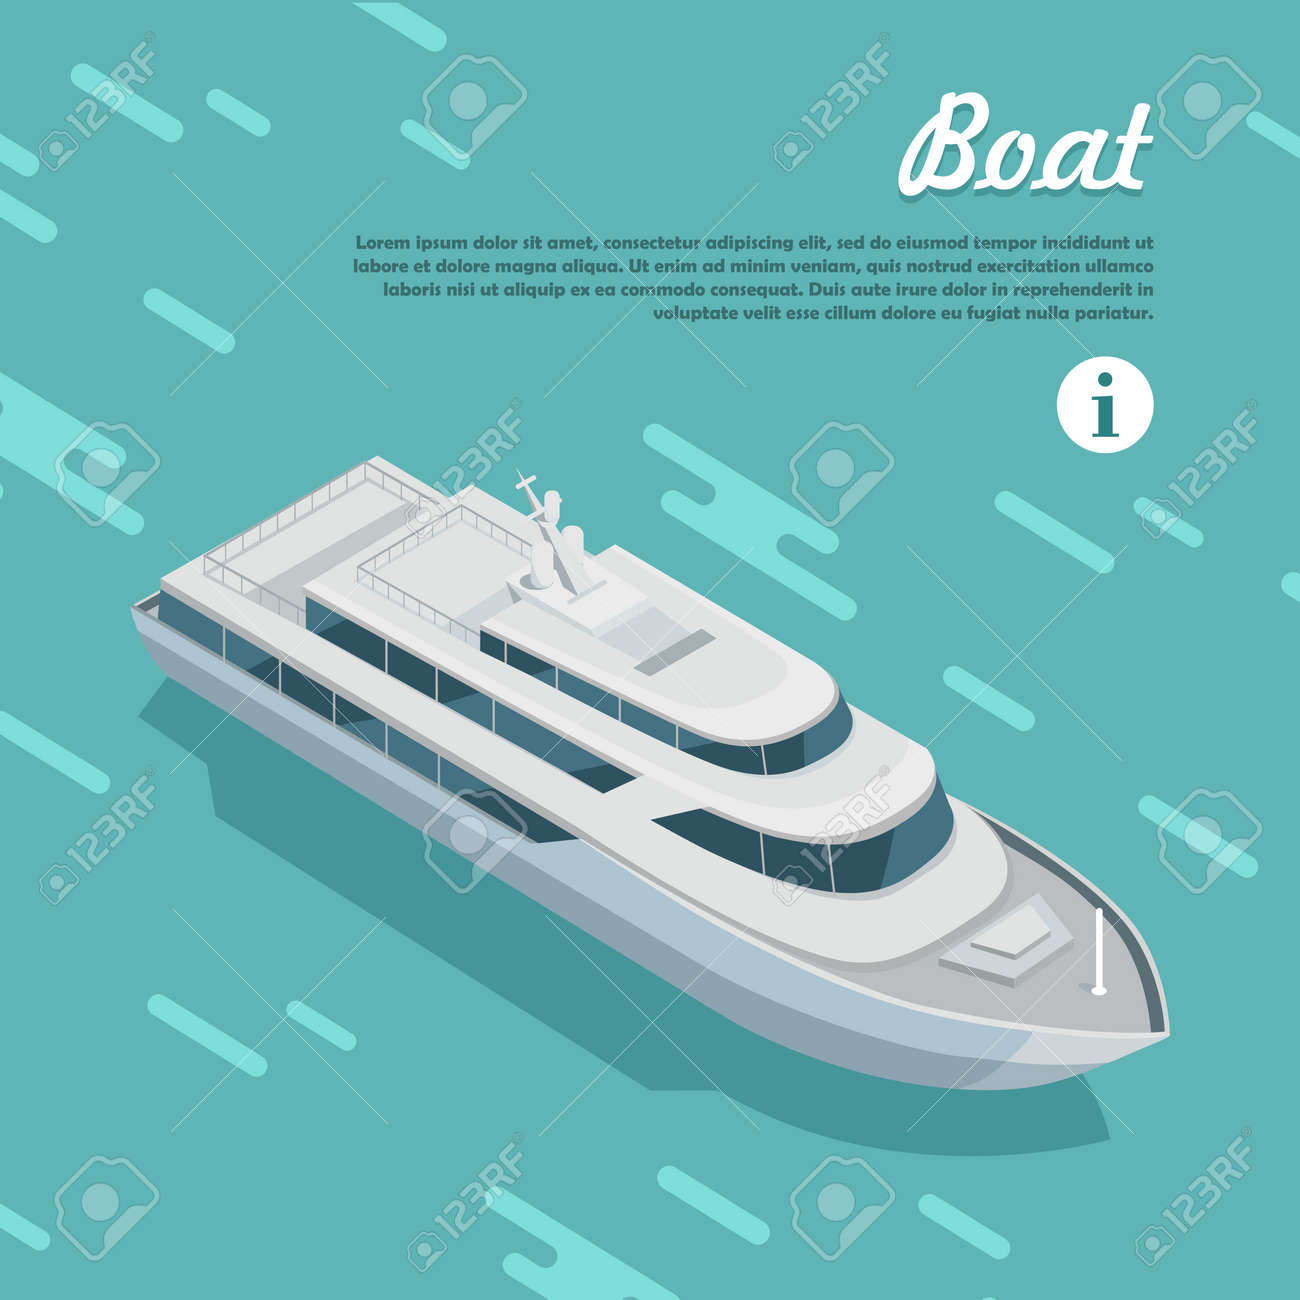 Boat Sailing In Sea Boat Watercraft Designed To Float Plane - How do cruise ships float